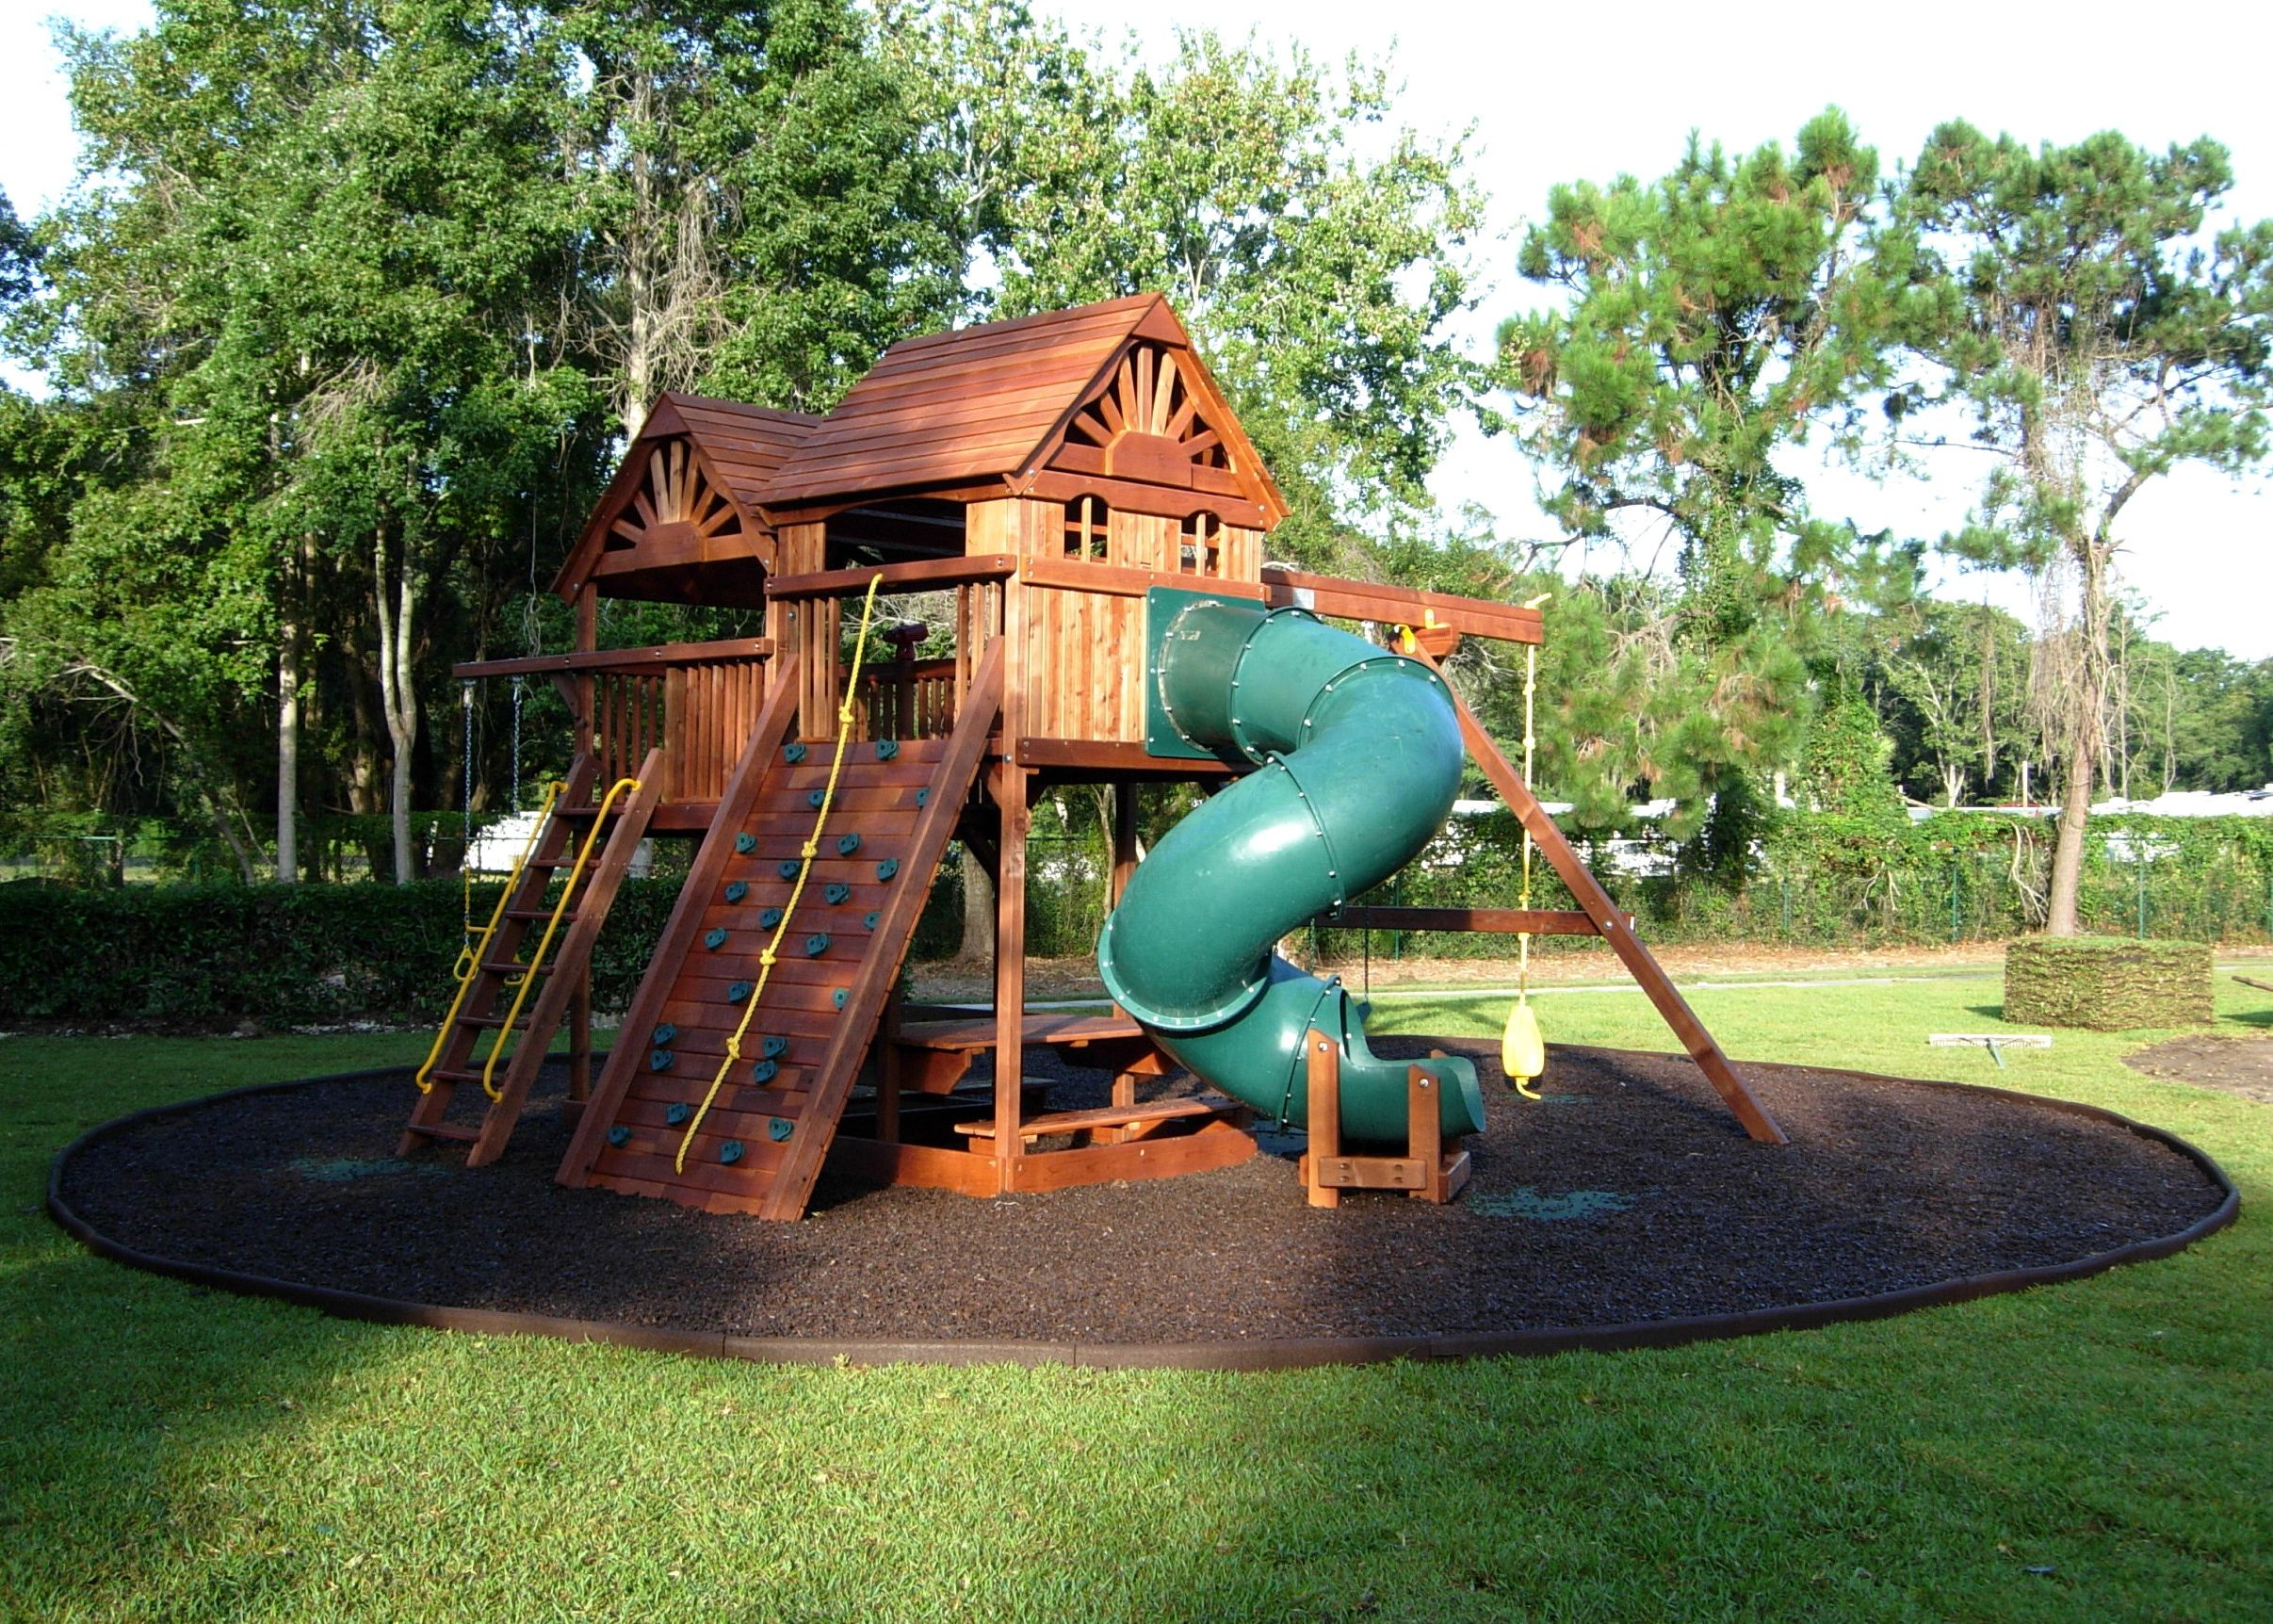 rubber mulch ceative rubber works play ground projects